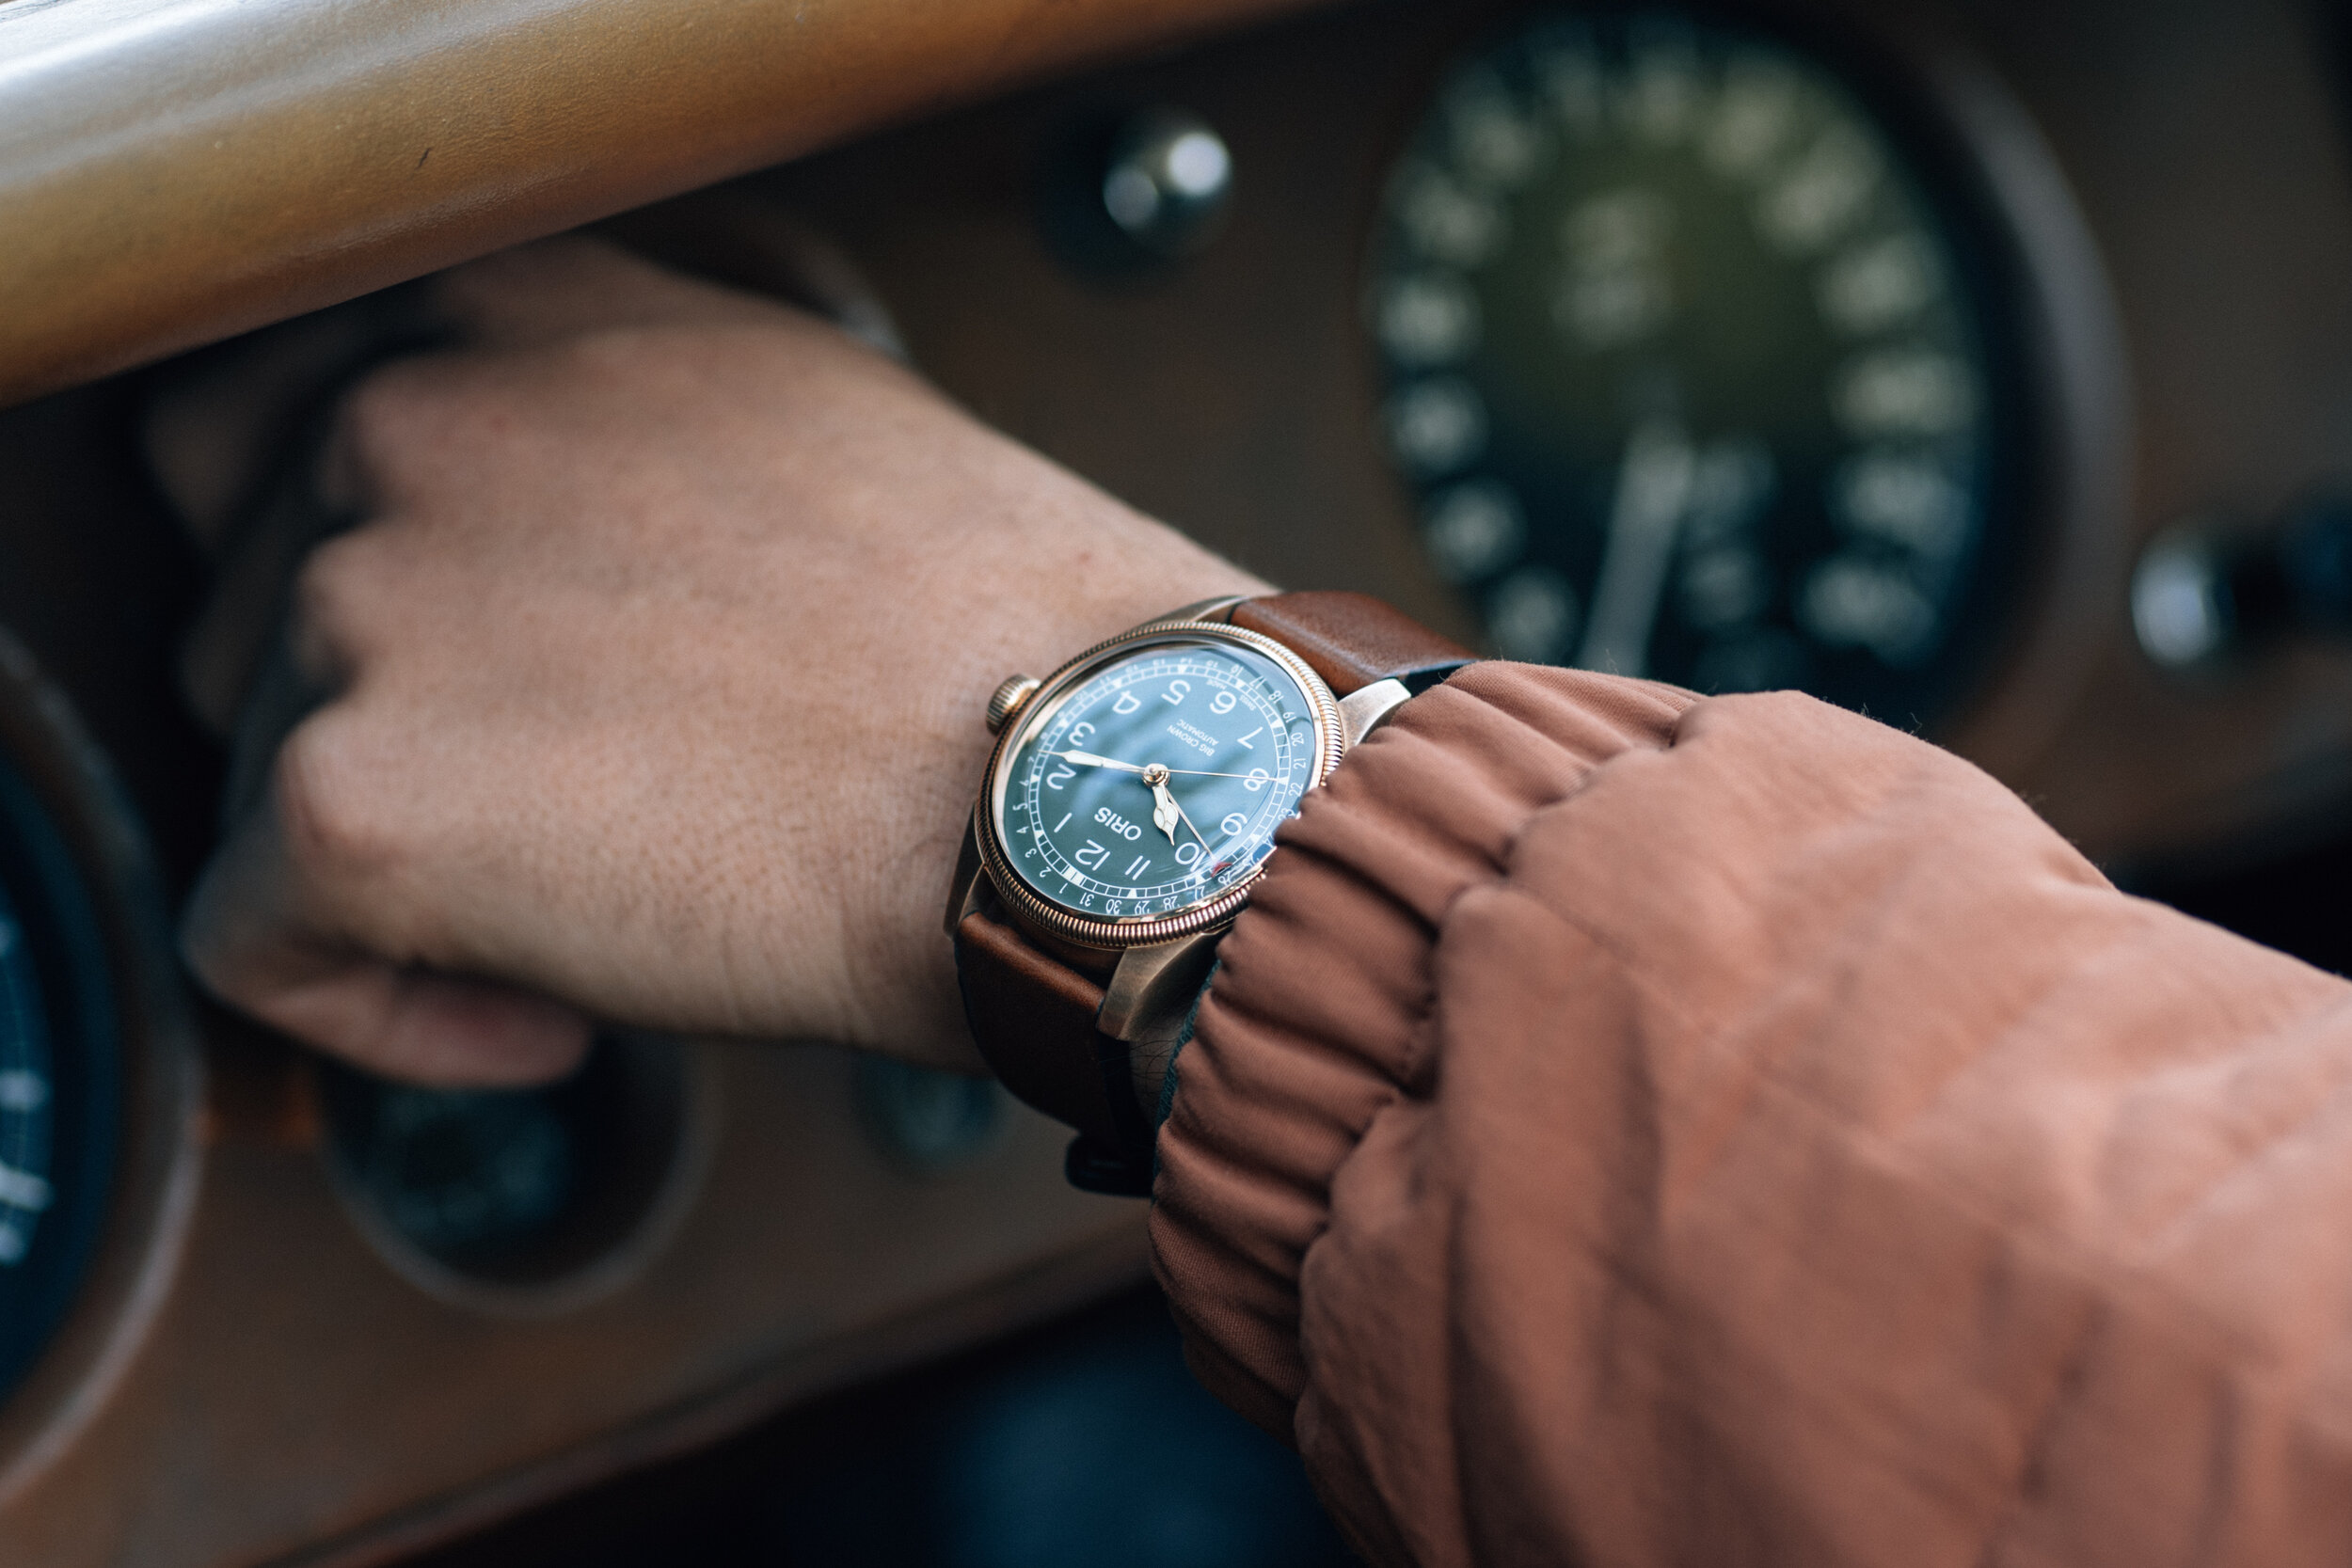 Oris - Back in the past with Oris and an old Jaguar.